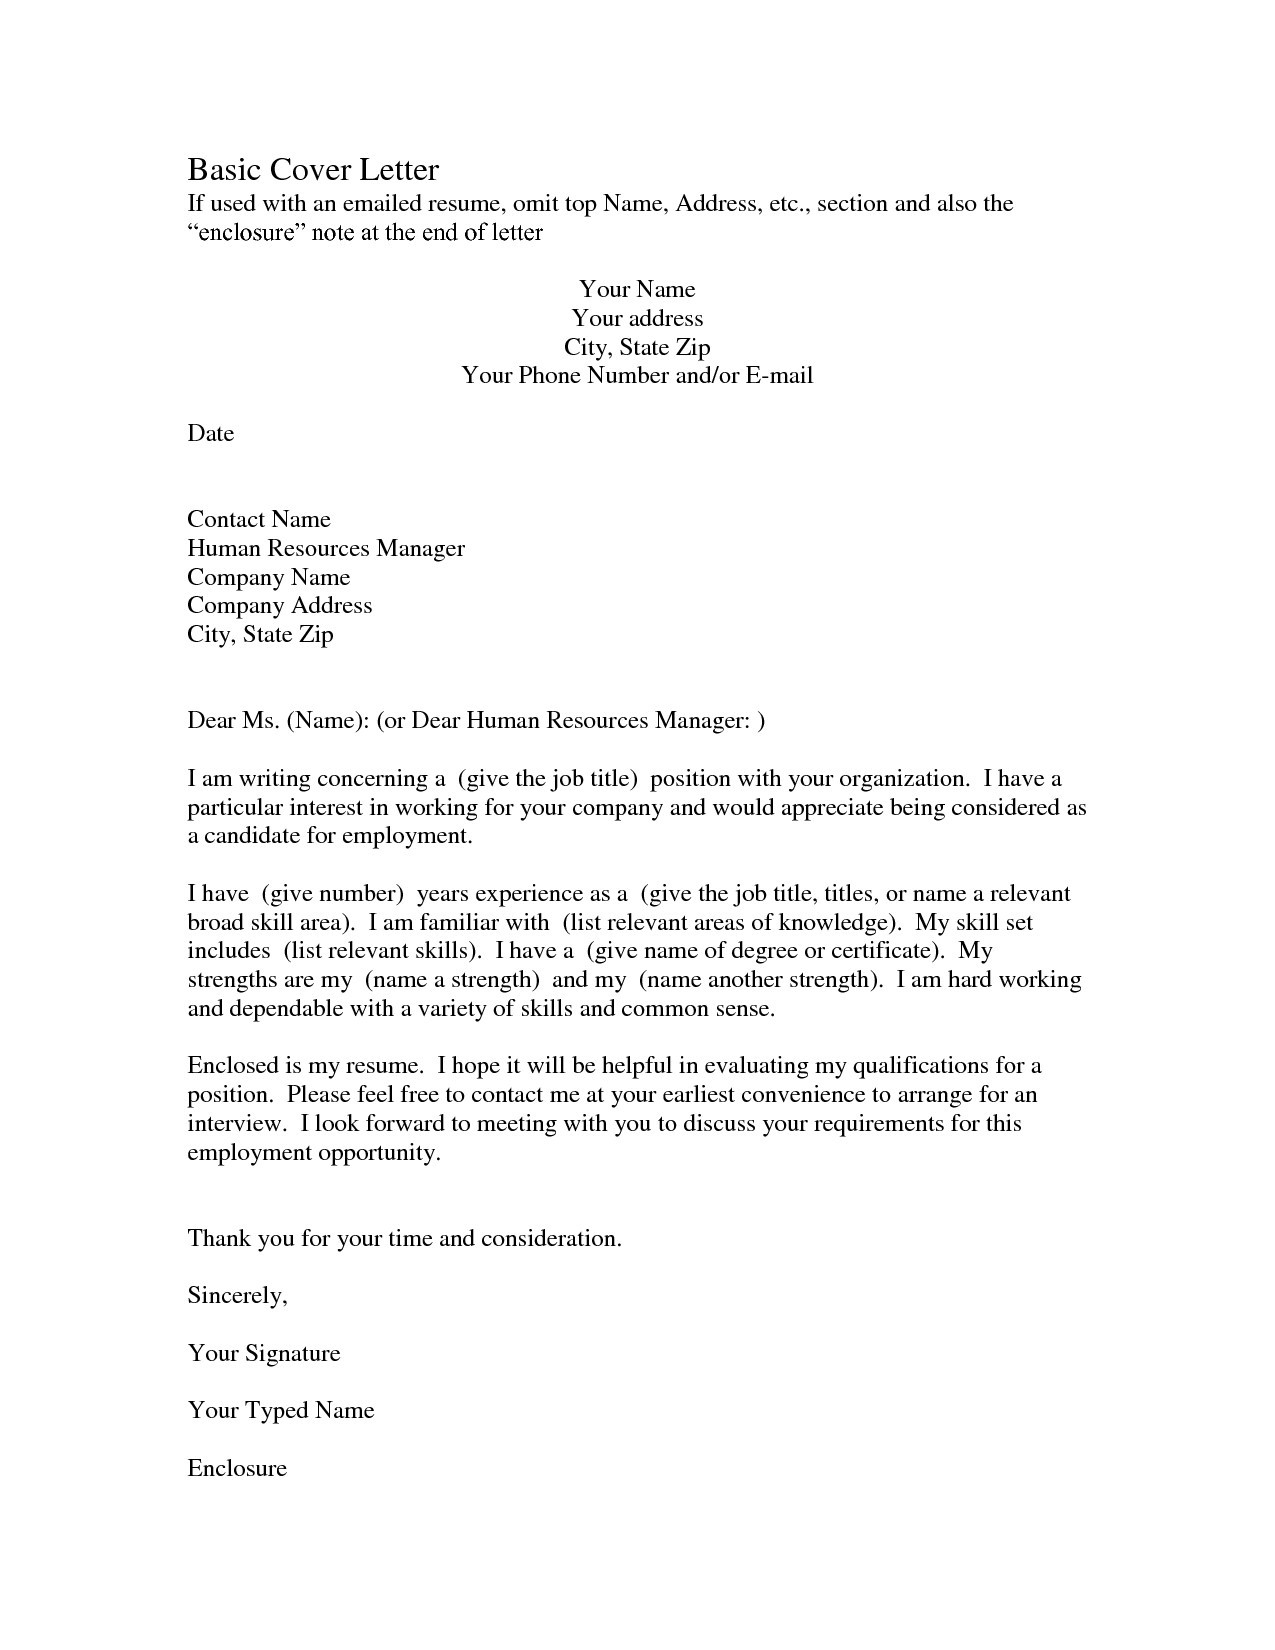 Free Job Cover Letter Template - Free Resume Cover Letter format S